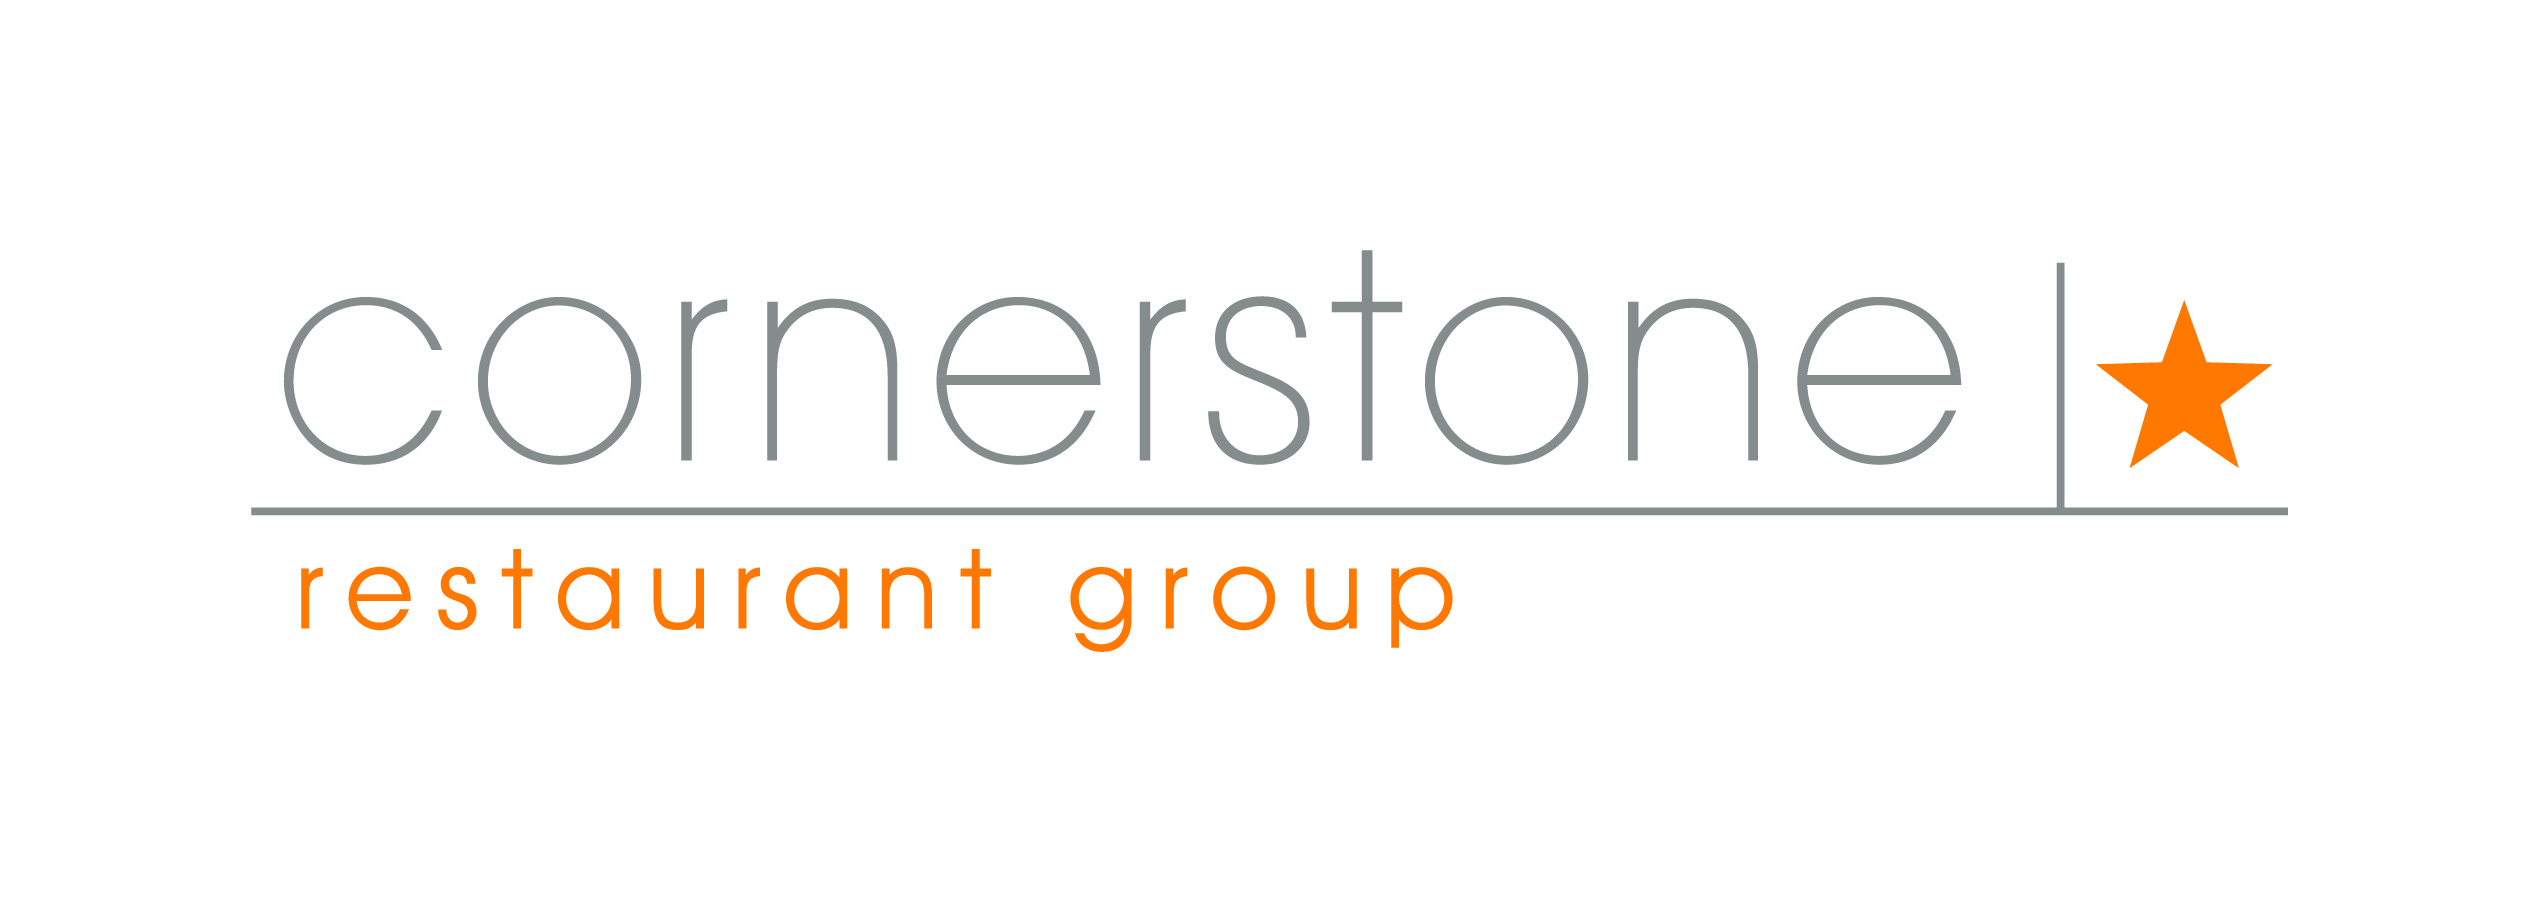 Cornerstone Restaurant Group Logo